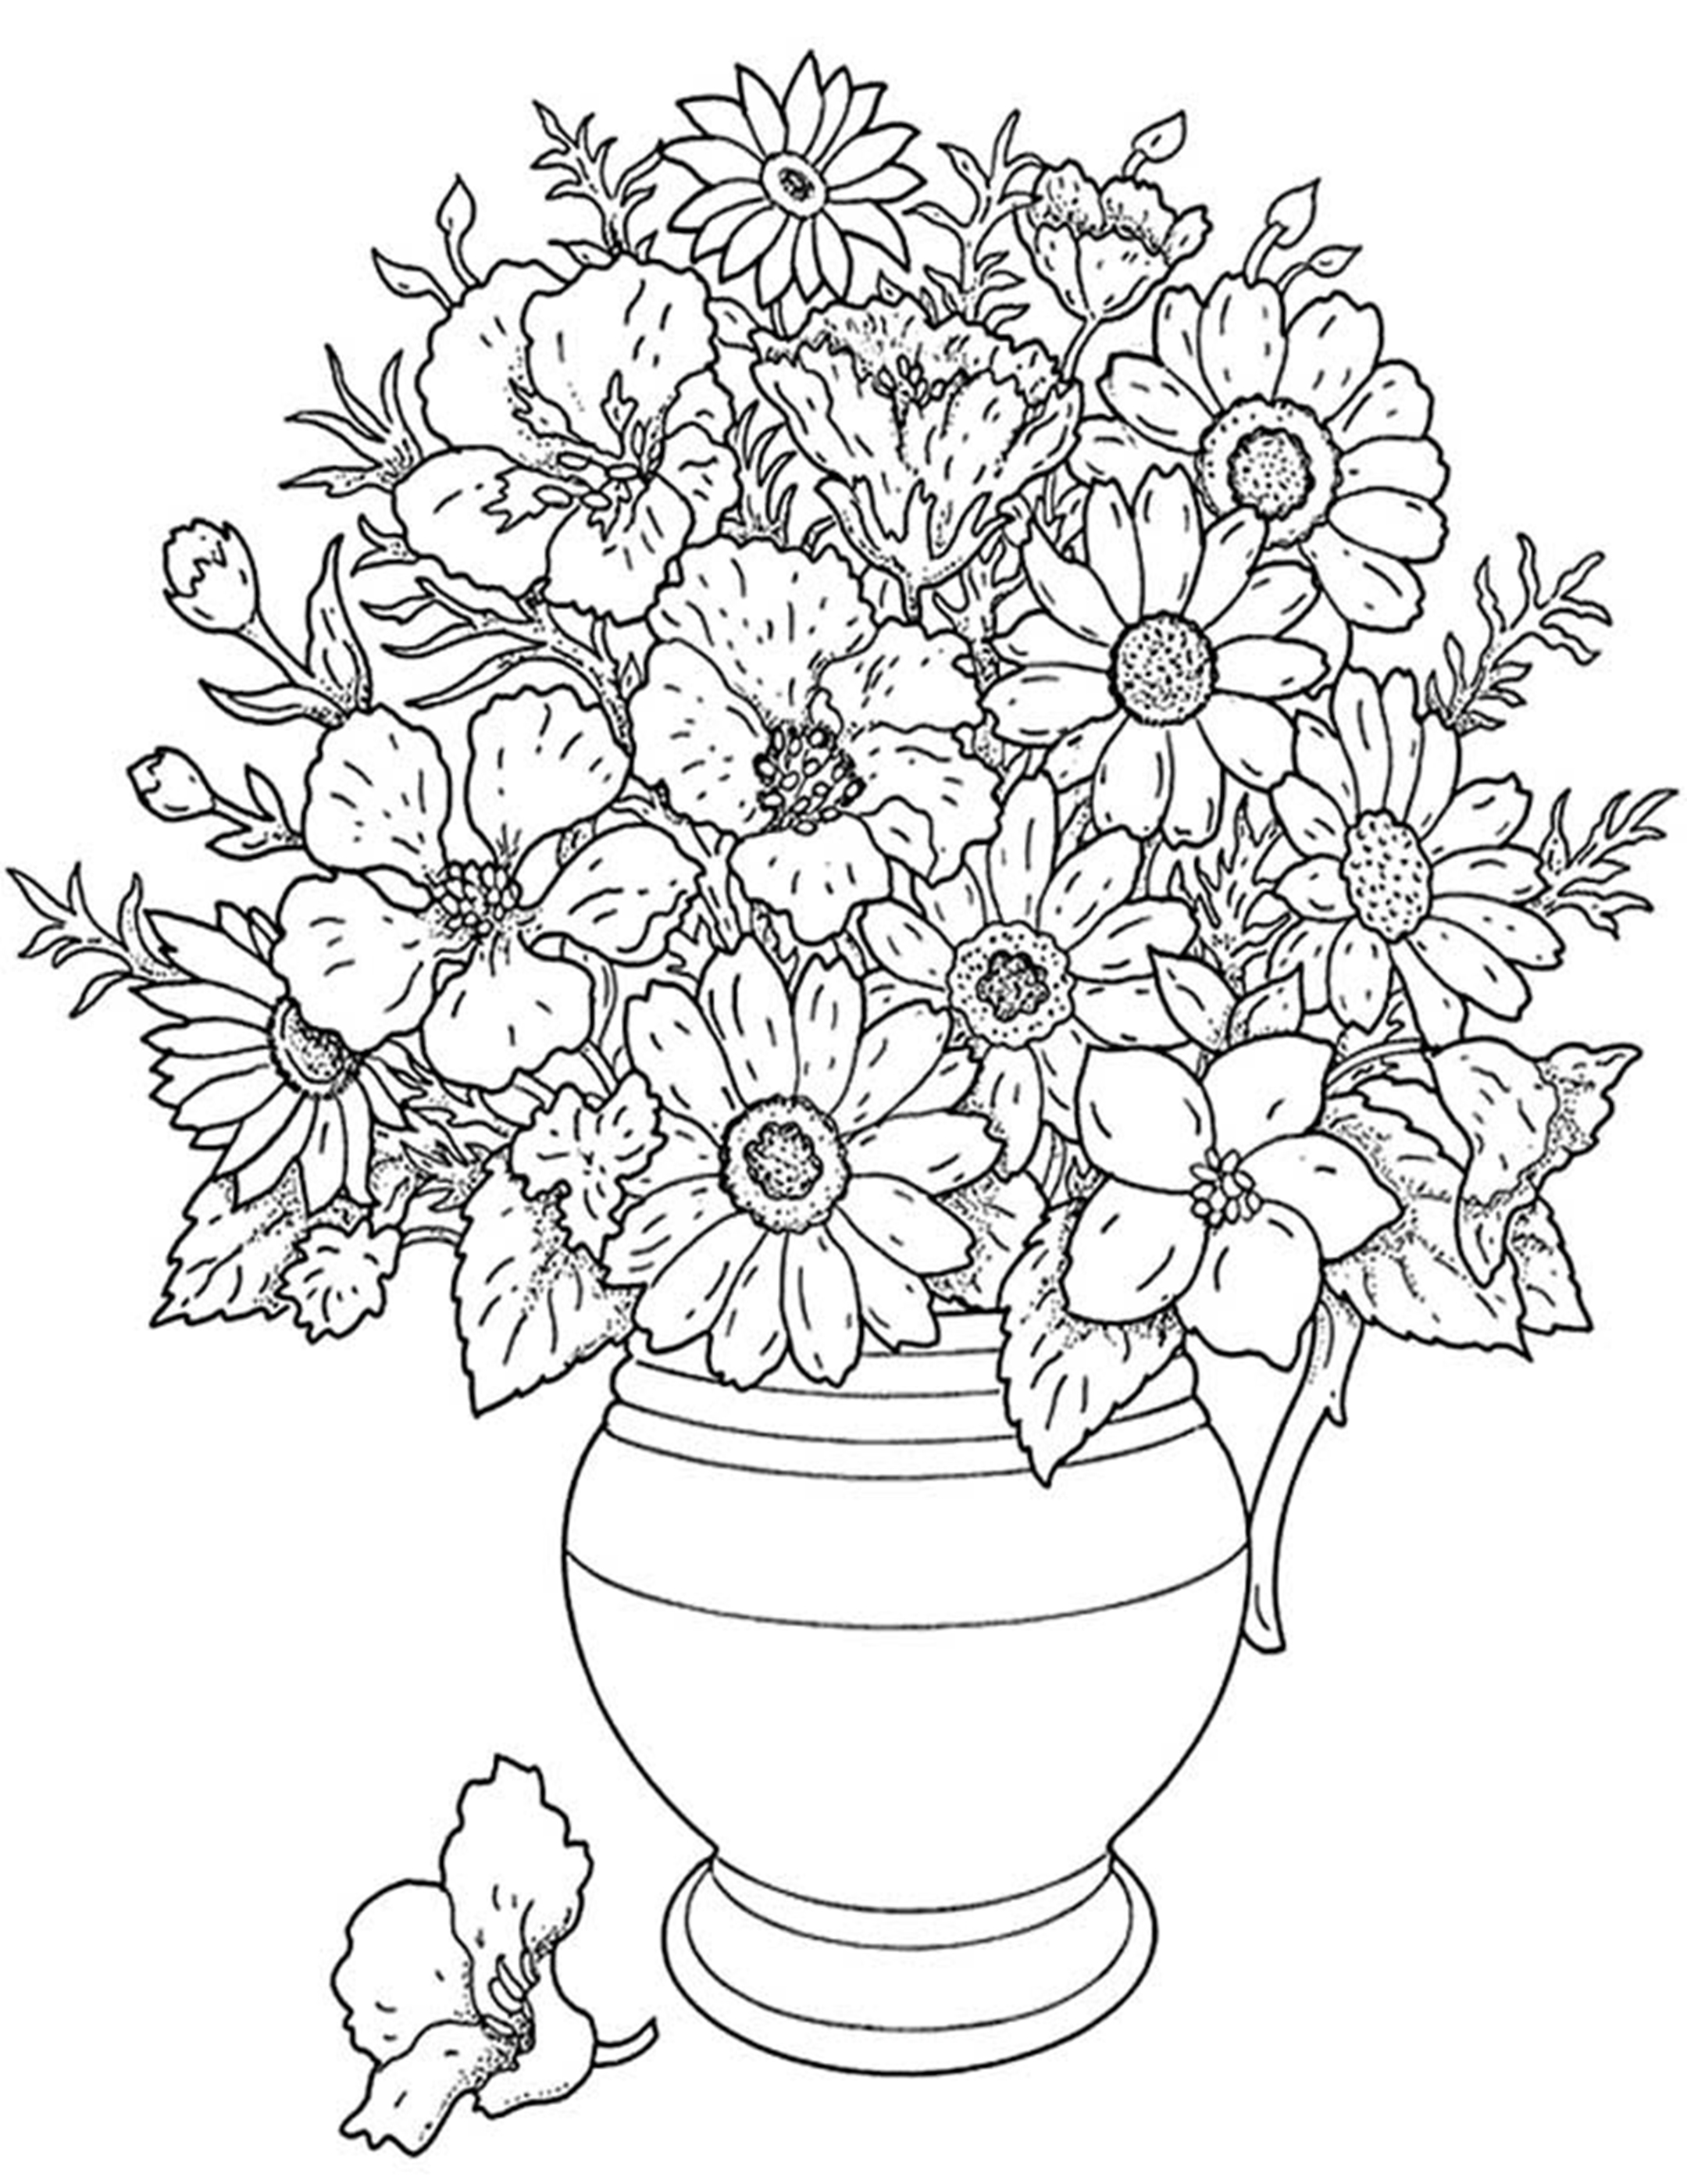 pictures of flowers for coloring free printable flower coloring pages for kids best for flowers of pictures coloring